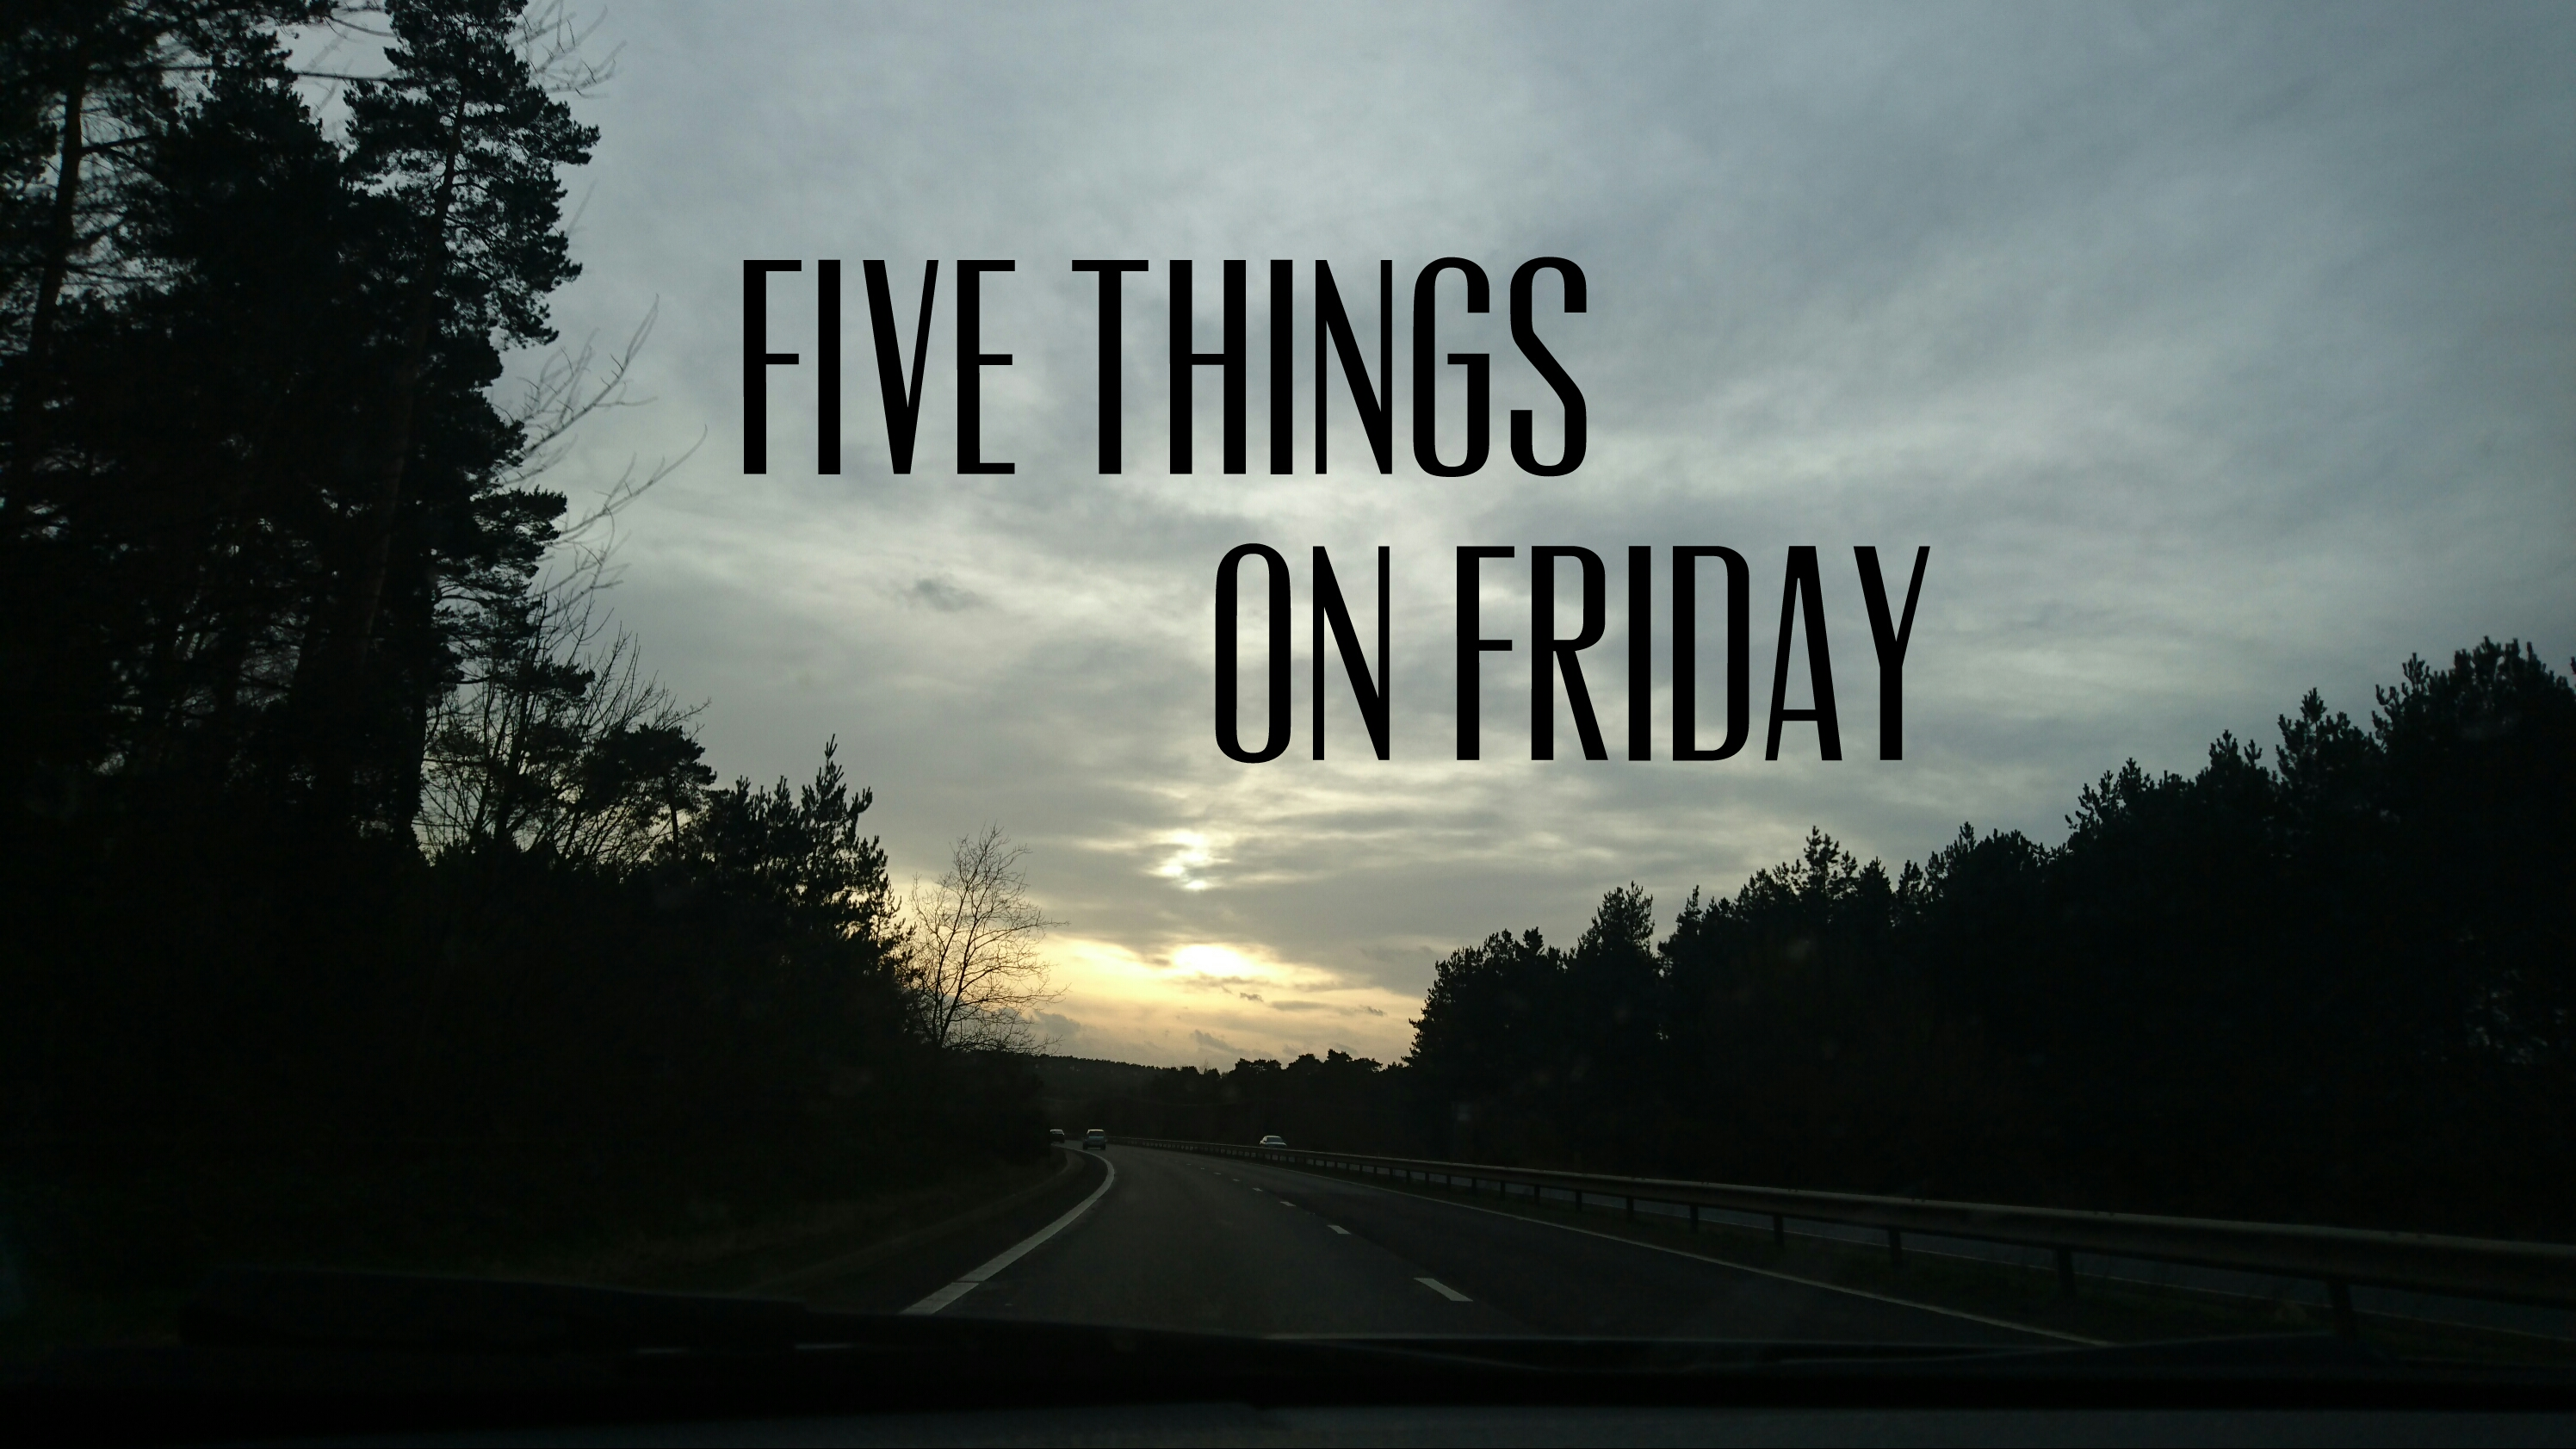 Five things on Friday #157